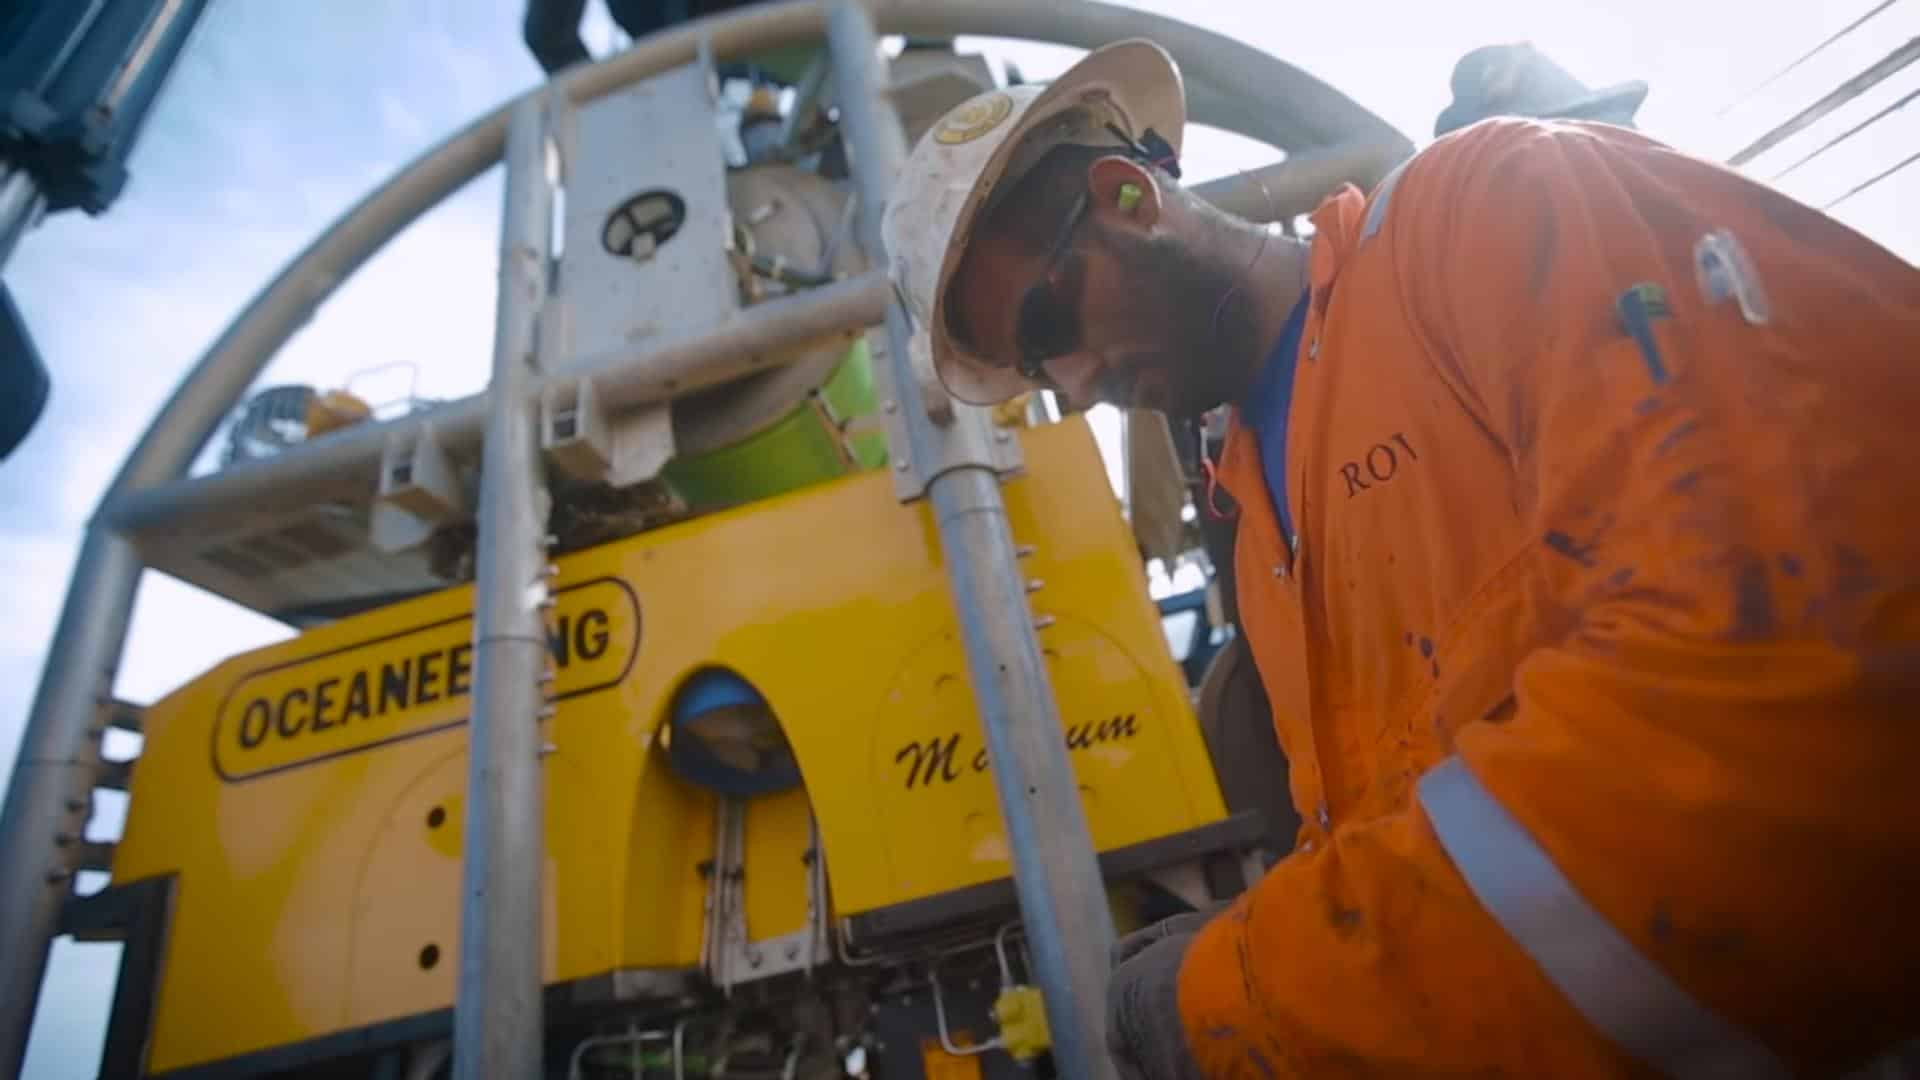 Vagas offshore, Oceaneering, Macaé